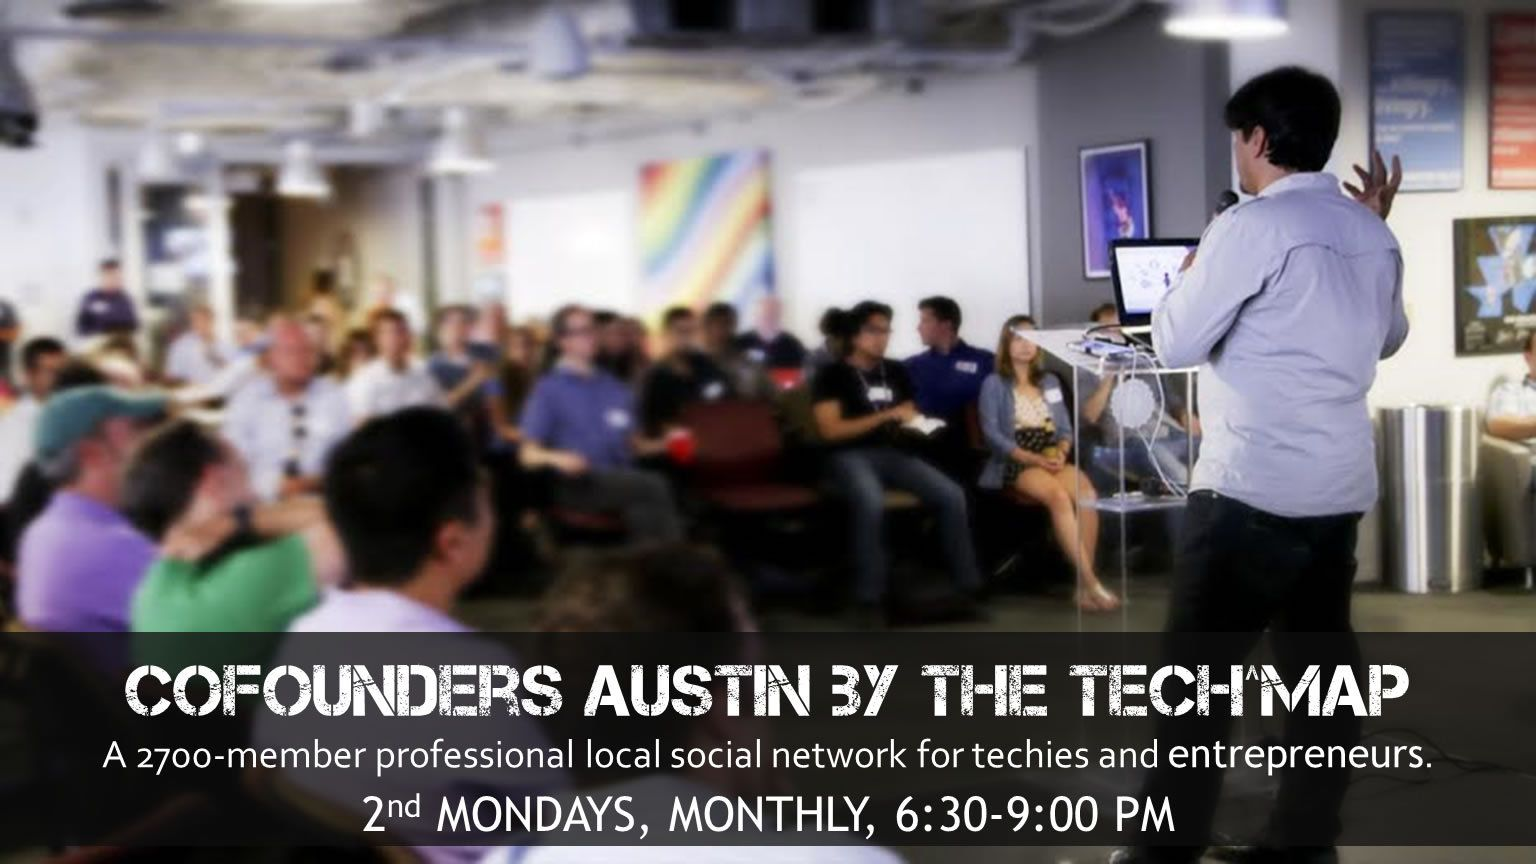 CoFounder Austin by the tech^map